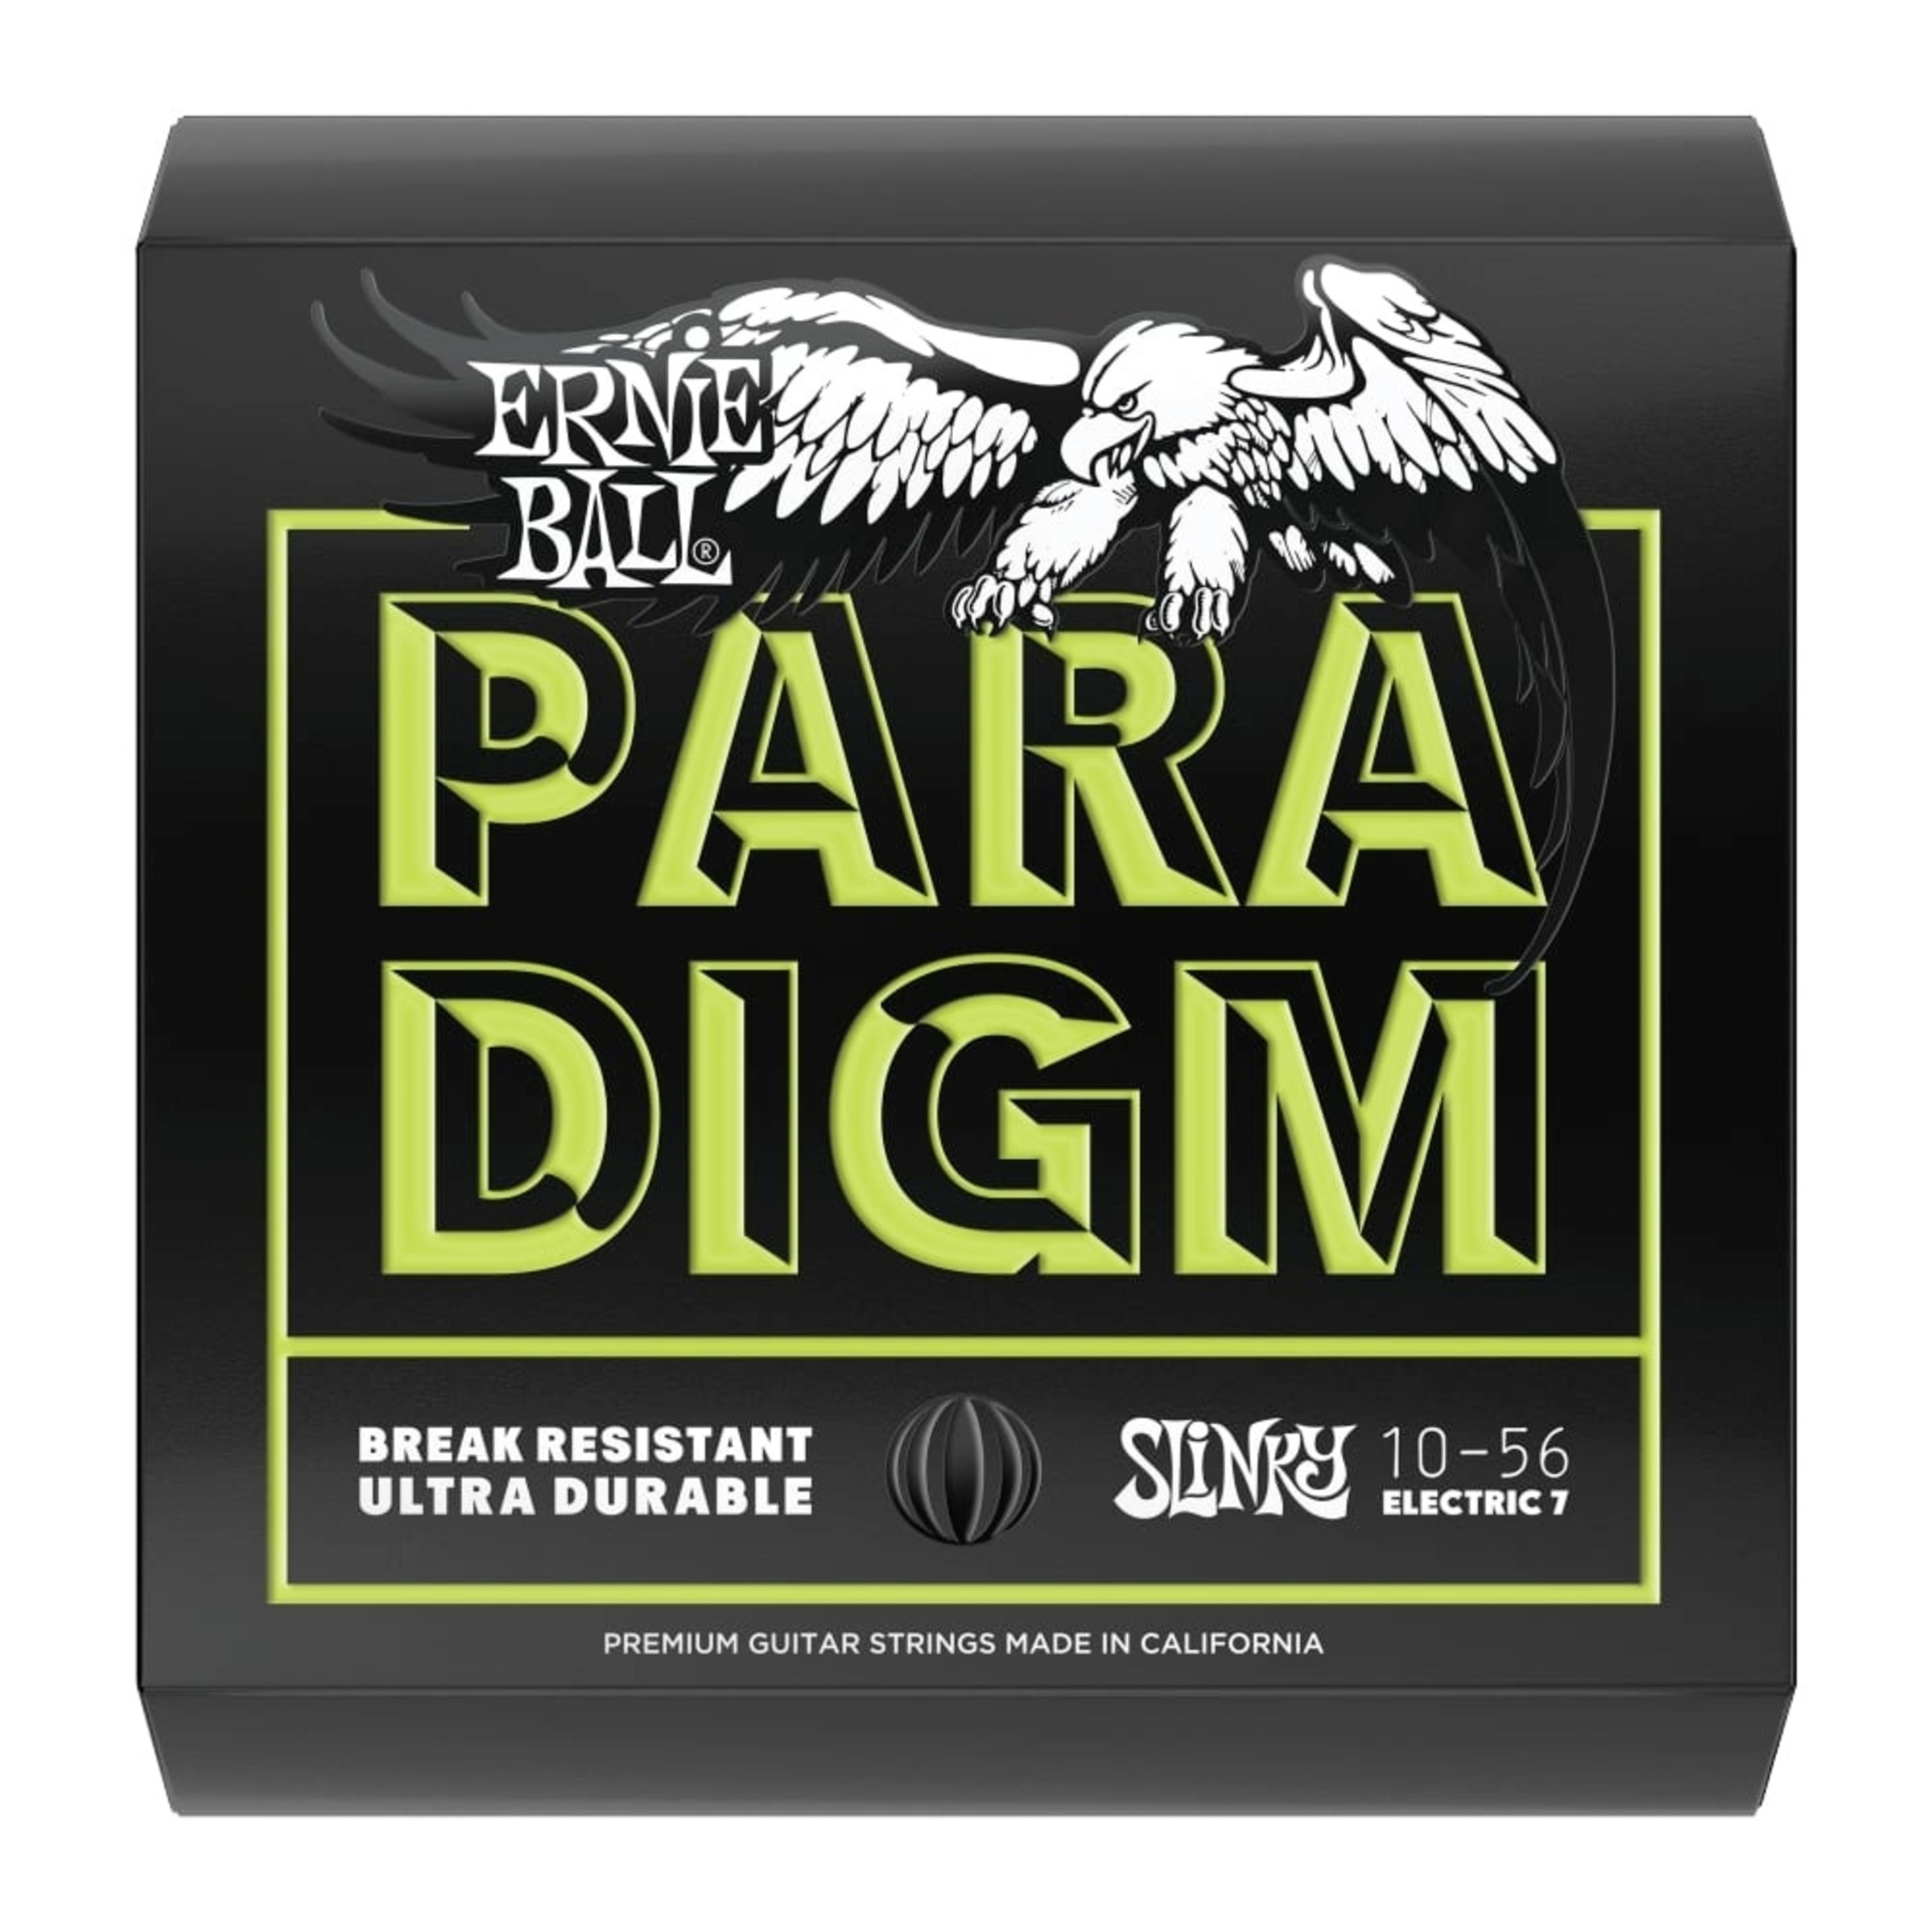 ernie ball paradigm electric guitar strings 7 string giggear. Black Bedroom Furniture Sets. Home Design Ideas